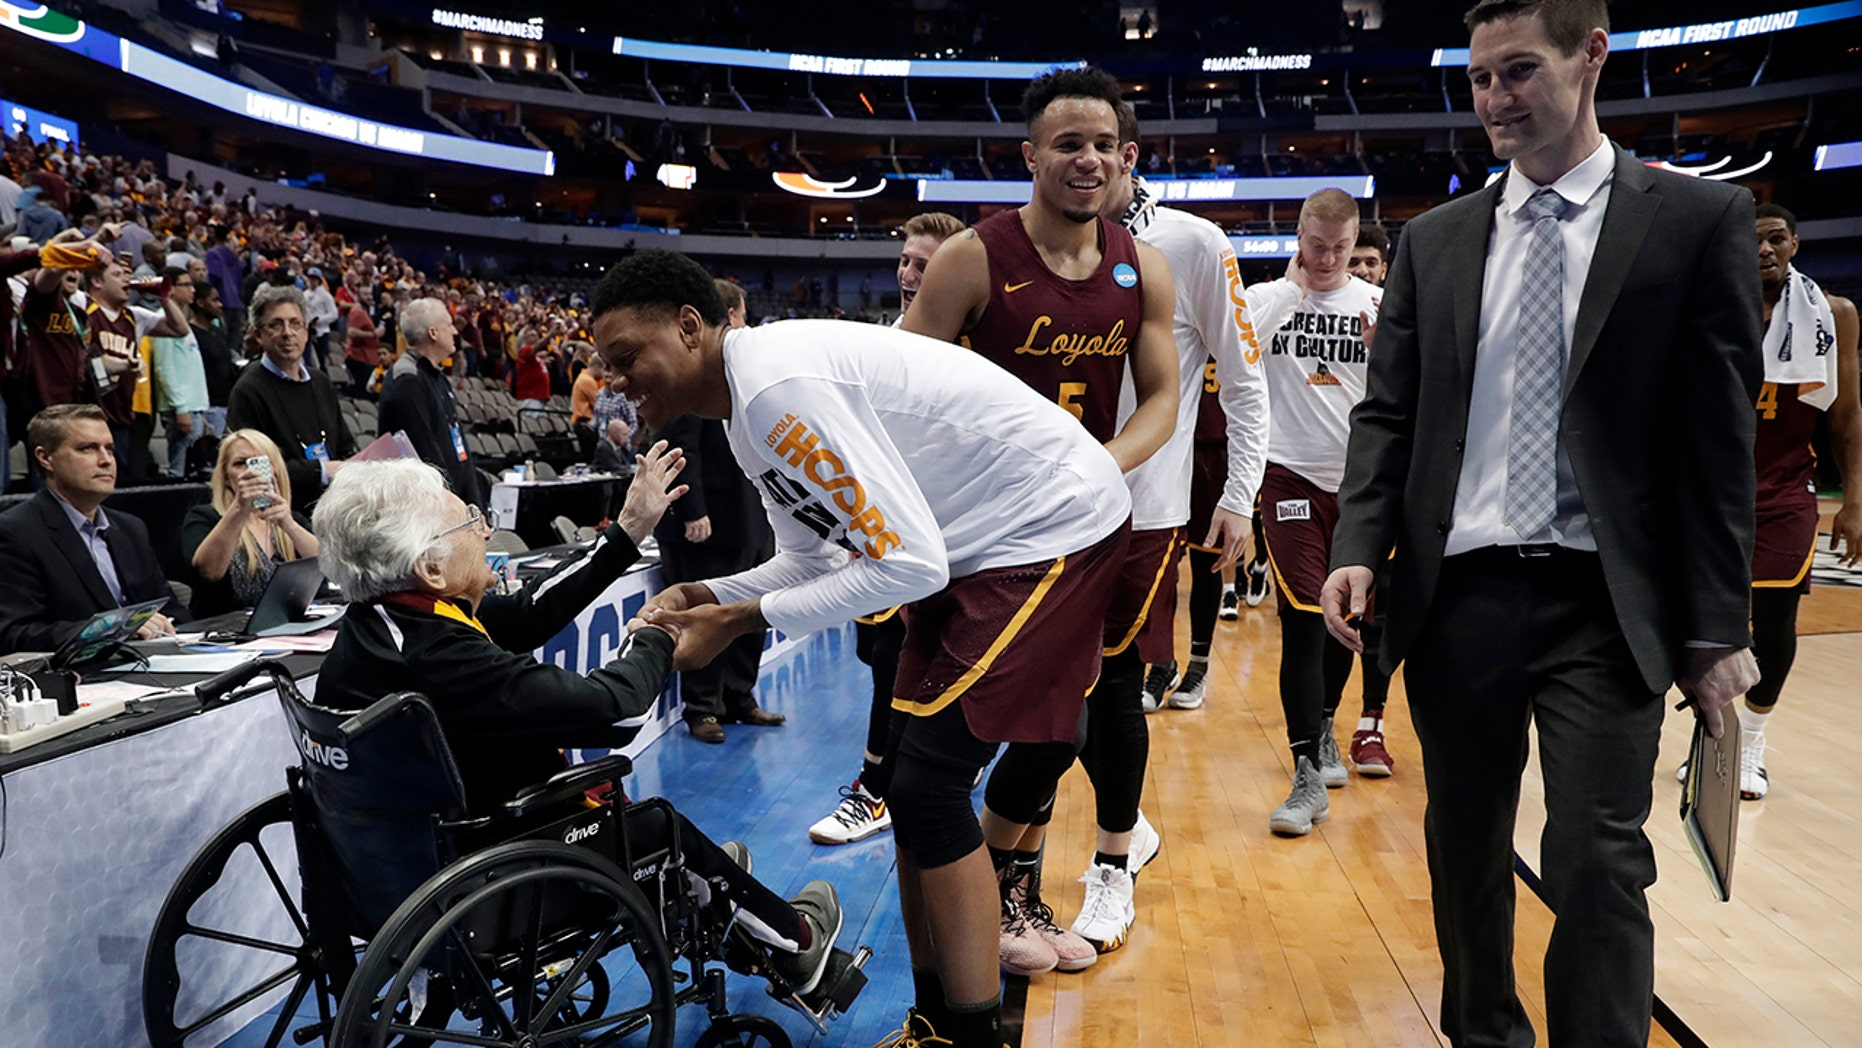 Sister Jean Dolores Schmidt, left, greets the Loyola-Chicago basketball team as they walk off the court after their win over Miami in a first-round game at the NCAA college basketball tournament in Dallas, March 15, 2018.